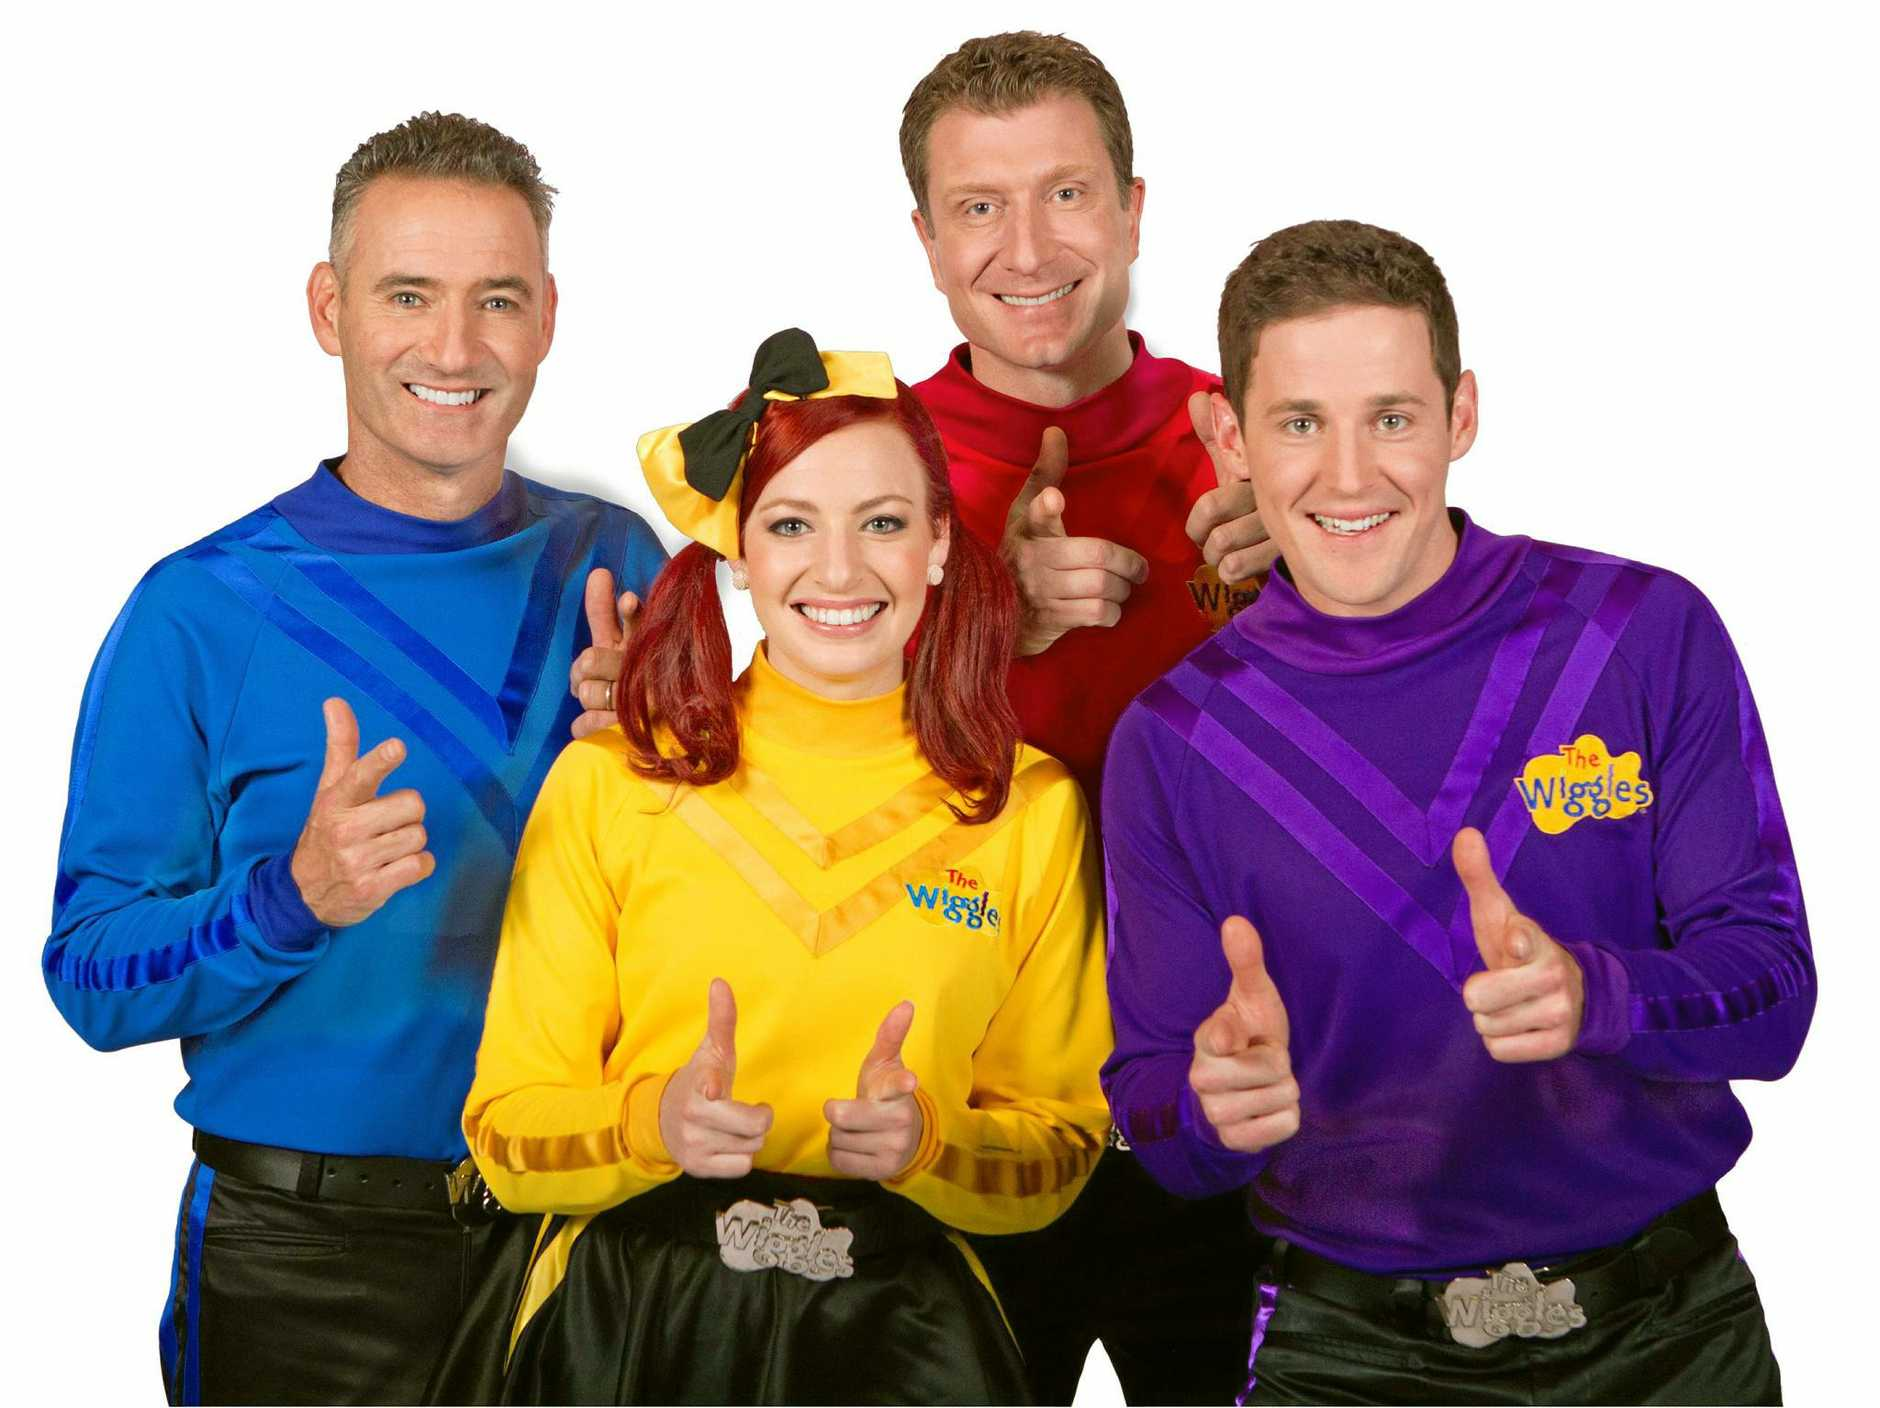 BUNDY BOUND: The Wiggles, Anthony Field, Emma Watkins, Simon Pryce and Lachlan Gillespie, are on their way to Bundaberg.